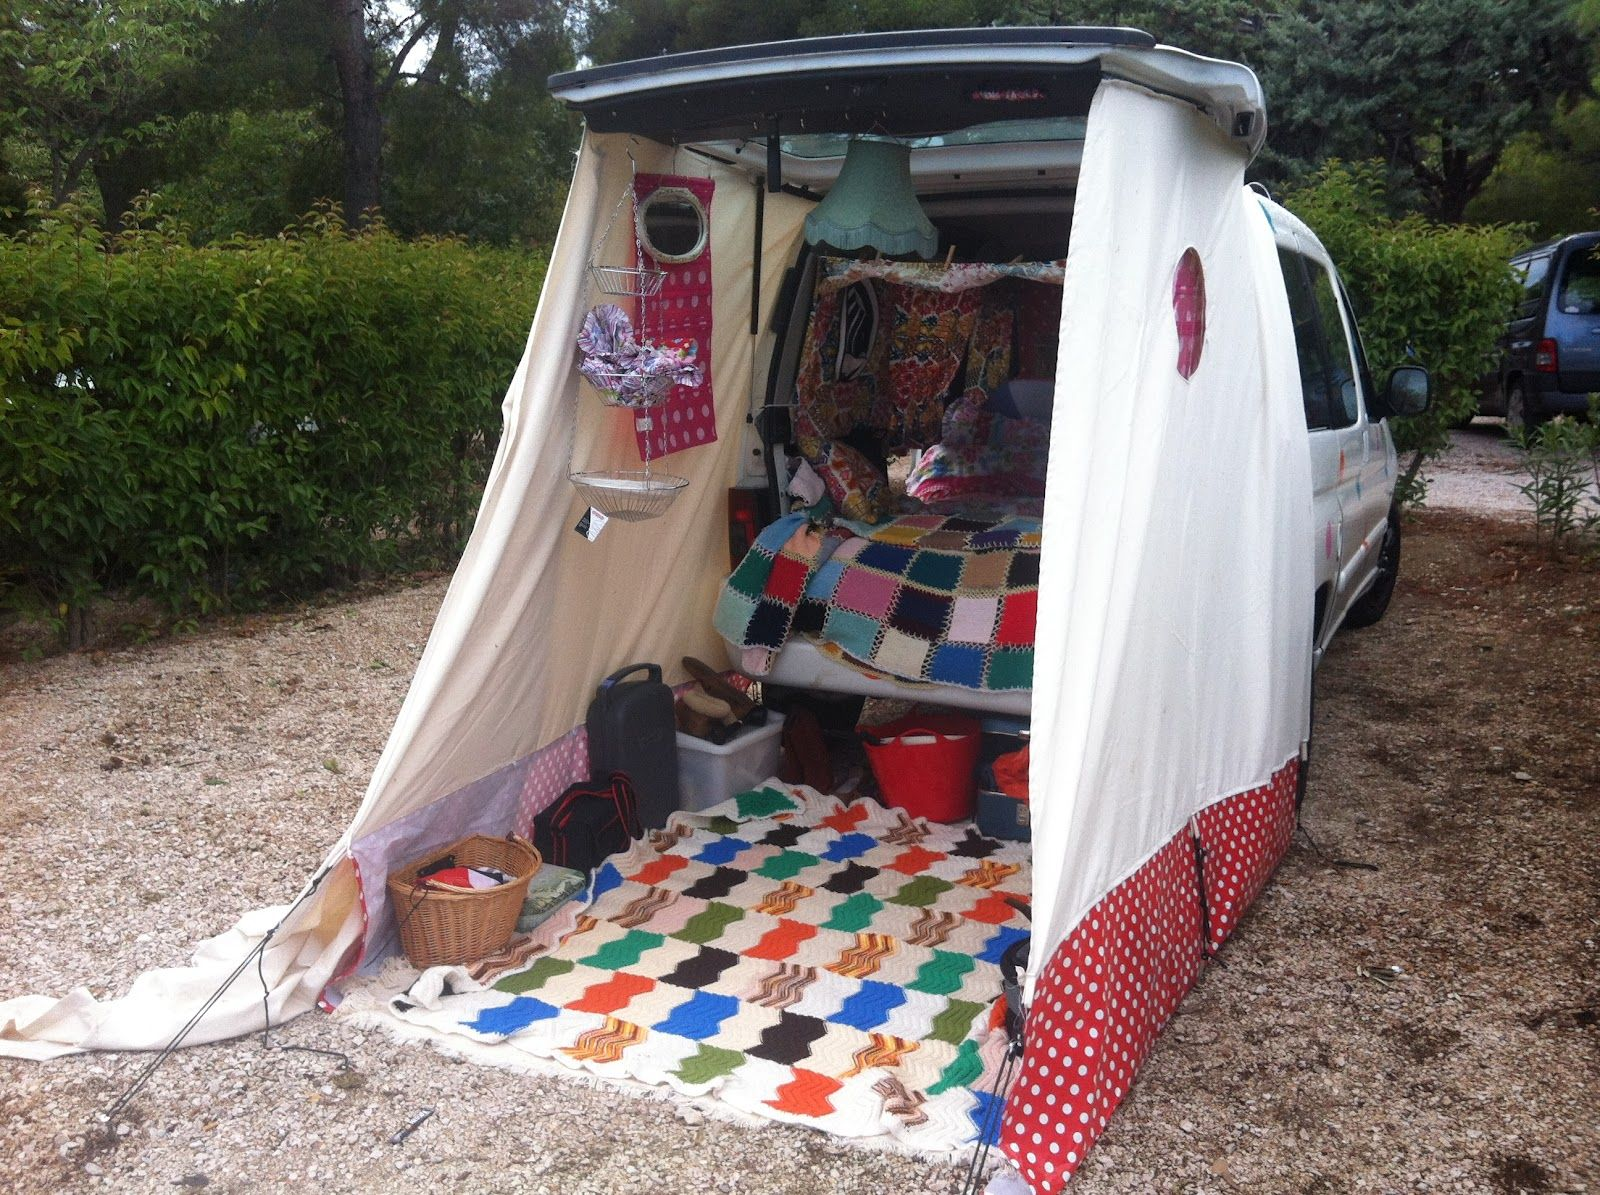 Kelly Jago BERLINGOCAMP Suv camping, Camp dusche